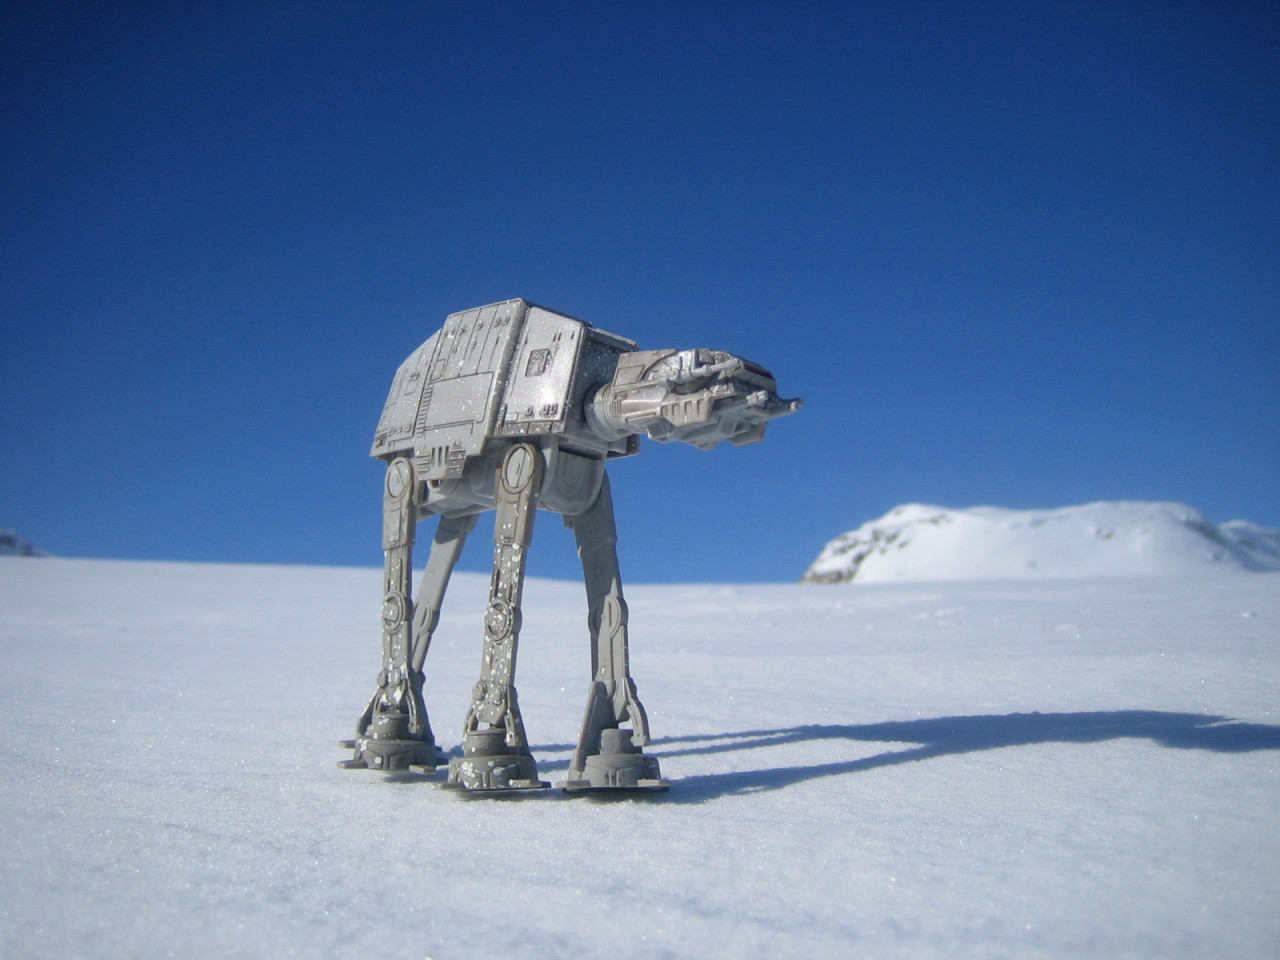 The Hardangerjokulen Glacier in Norway was the setting for the Battle of Hoth in The Empire Strikes Back, one of the fan's most beloved Star Wars sequences.